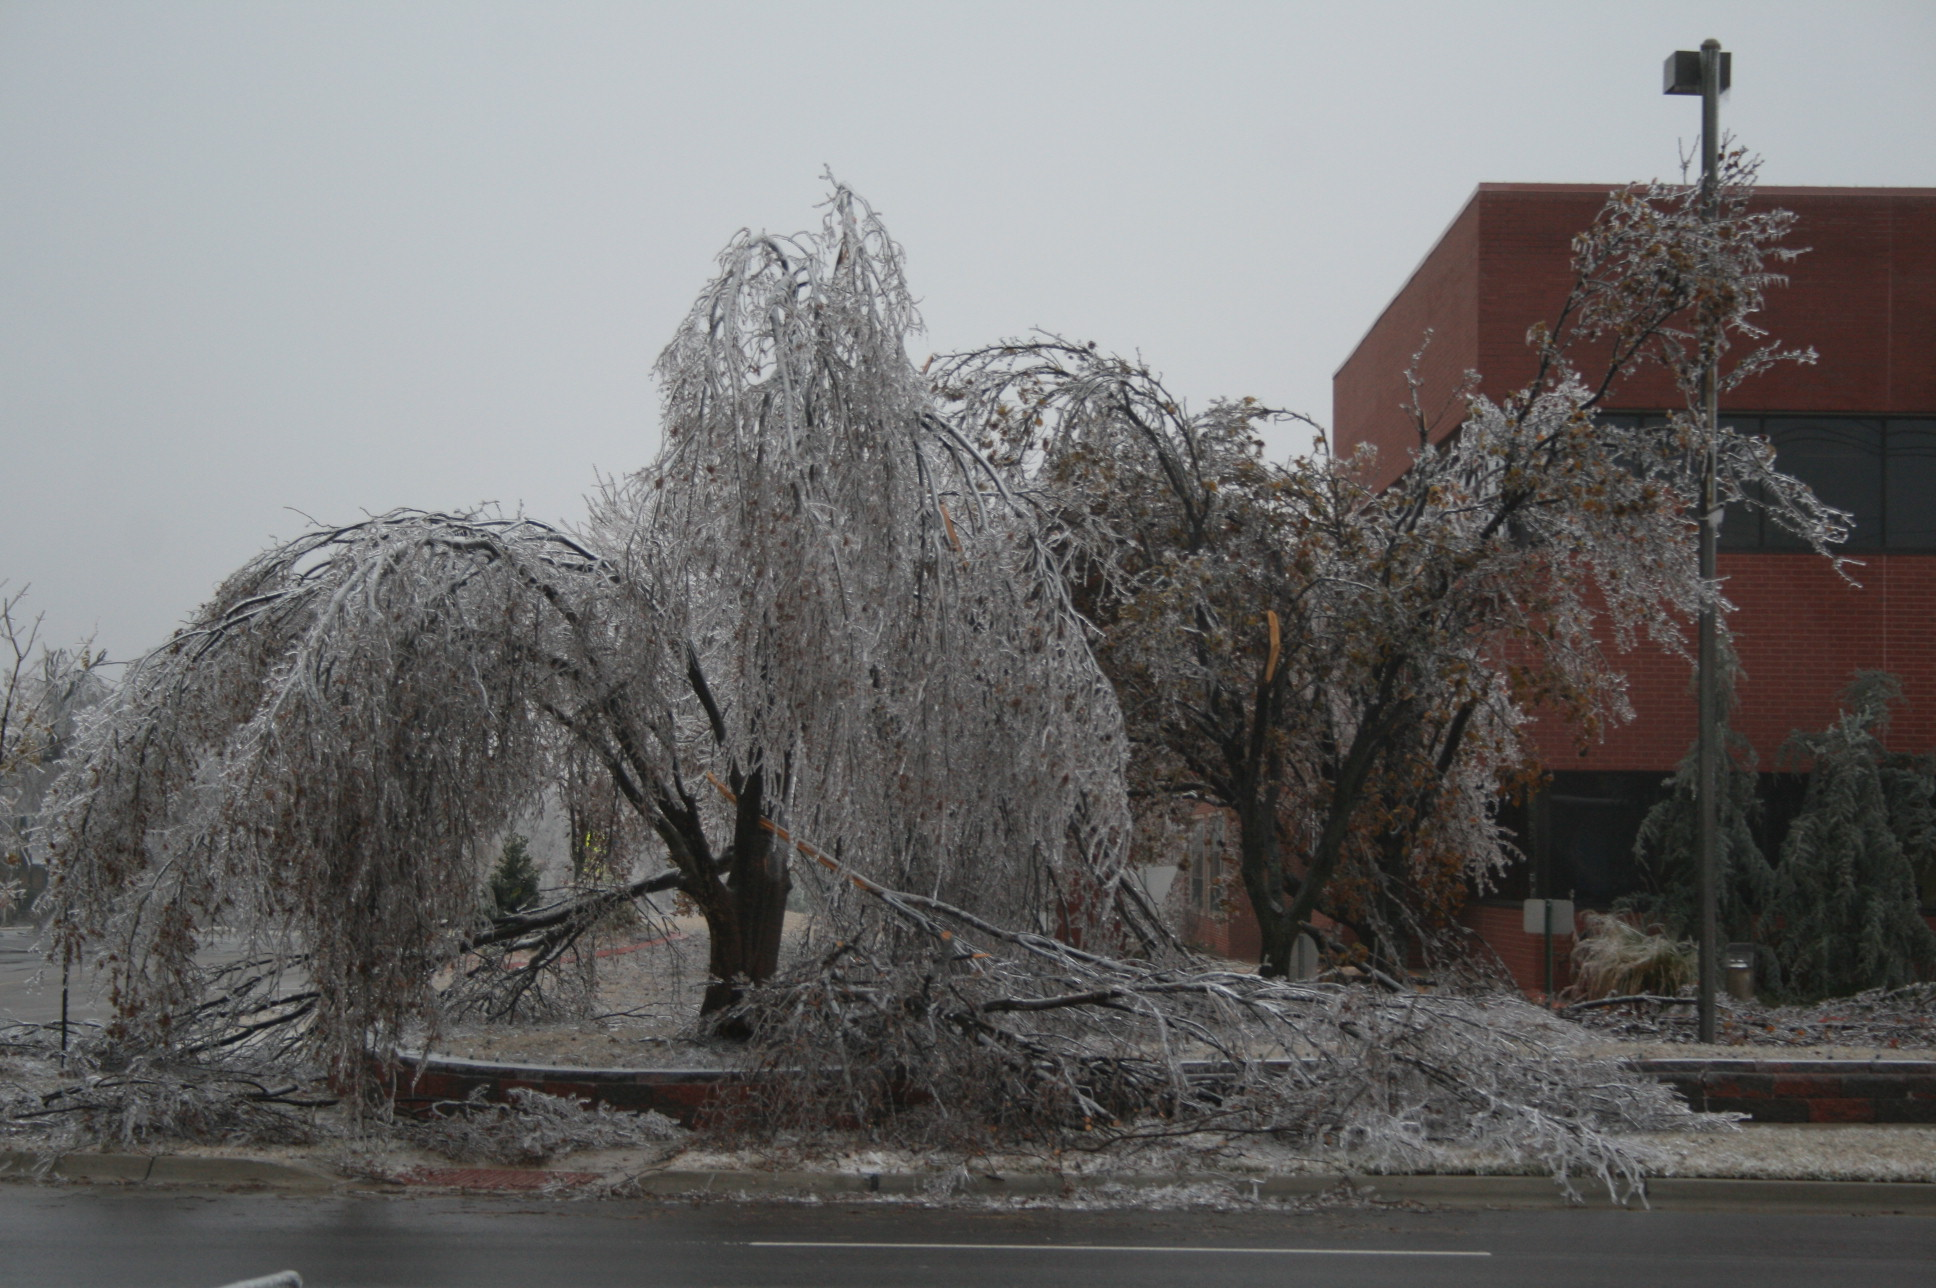 The December 8-11, 2007 Ice Storm in Oklahoma